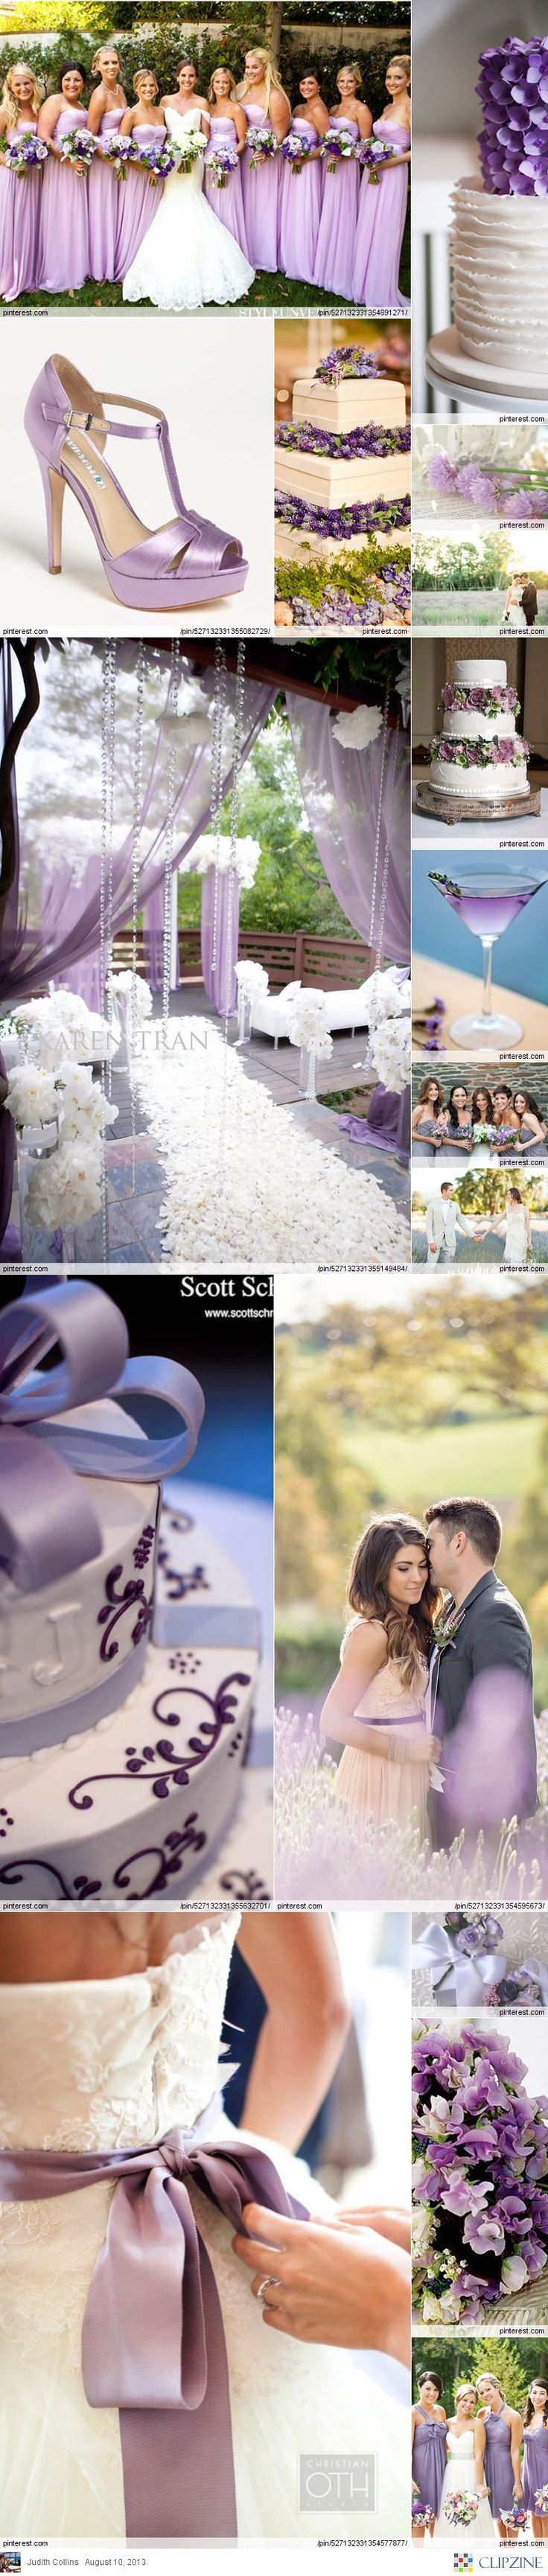 Lavender Weddings- perfect color scheme @Keri Whaitiri Whaitiri Hannie I bet you will think this is pretty